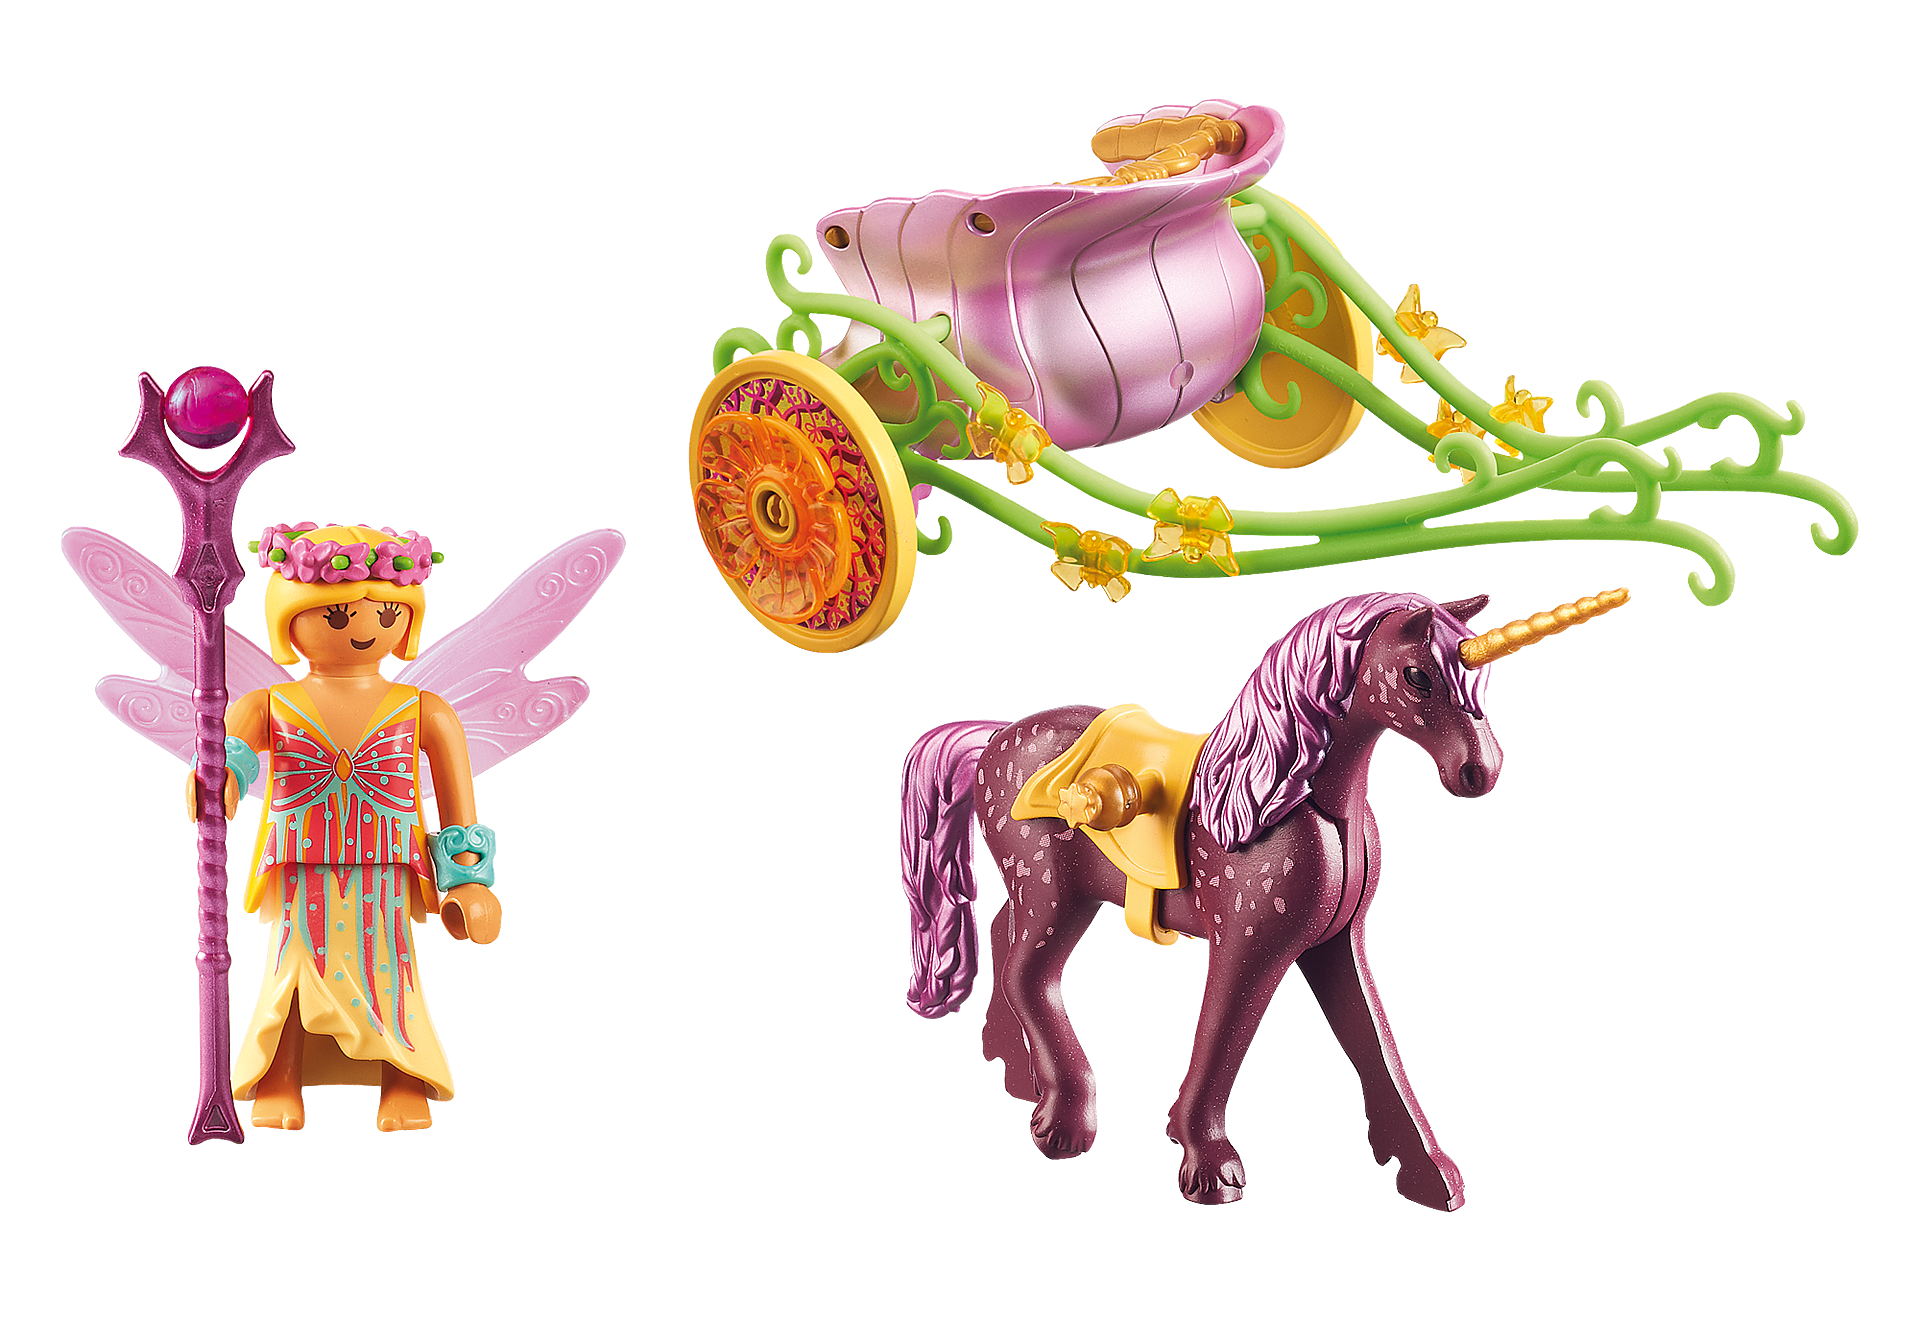 9136 Unicorn-Drawn Fairy Carriage zoom image4